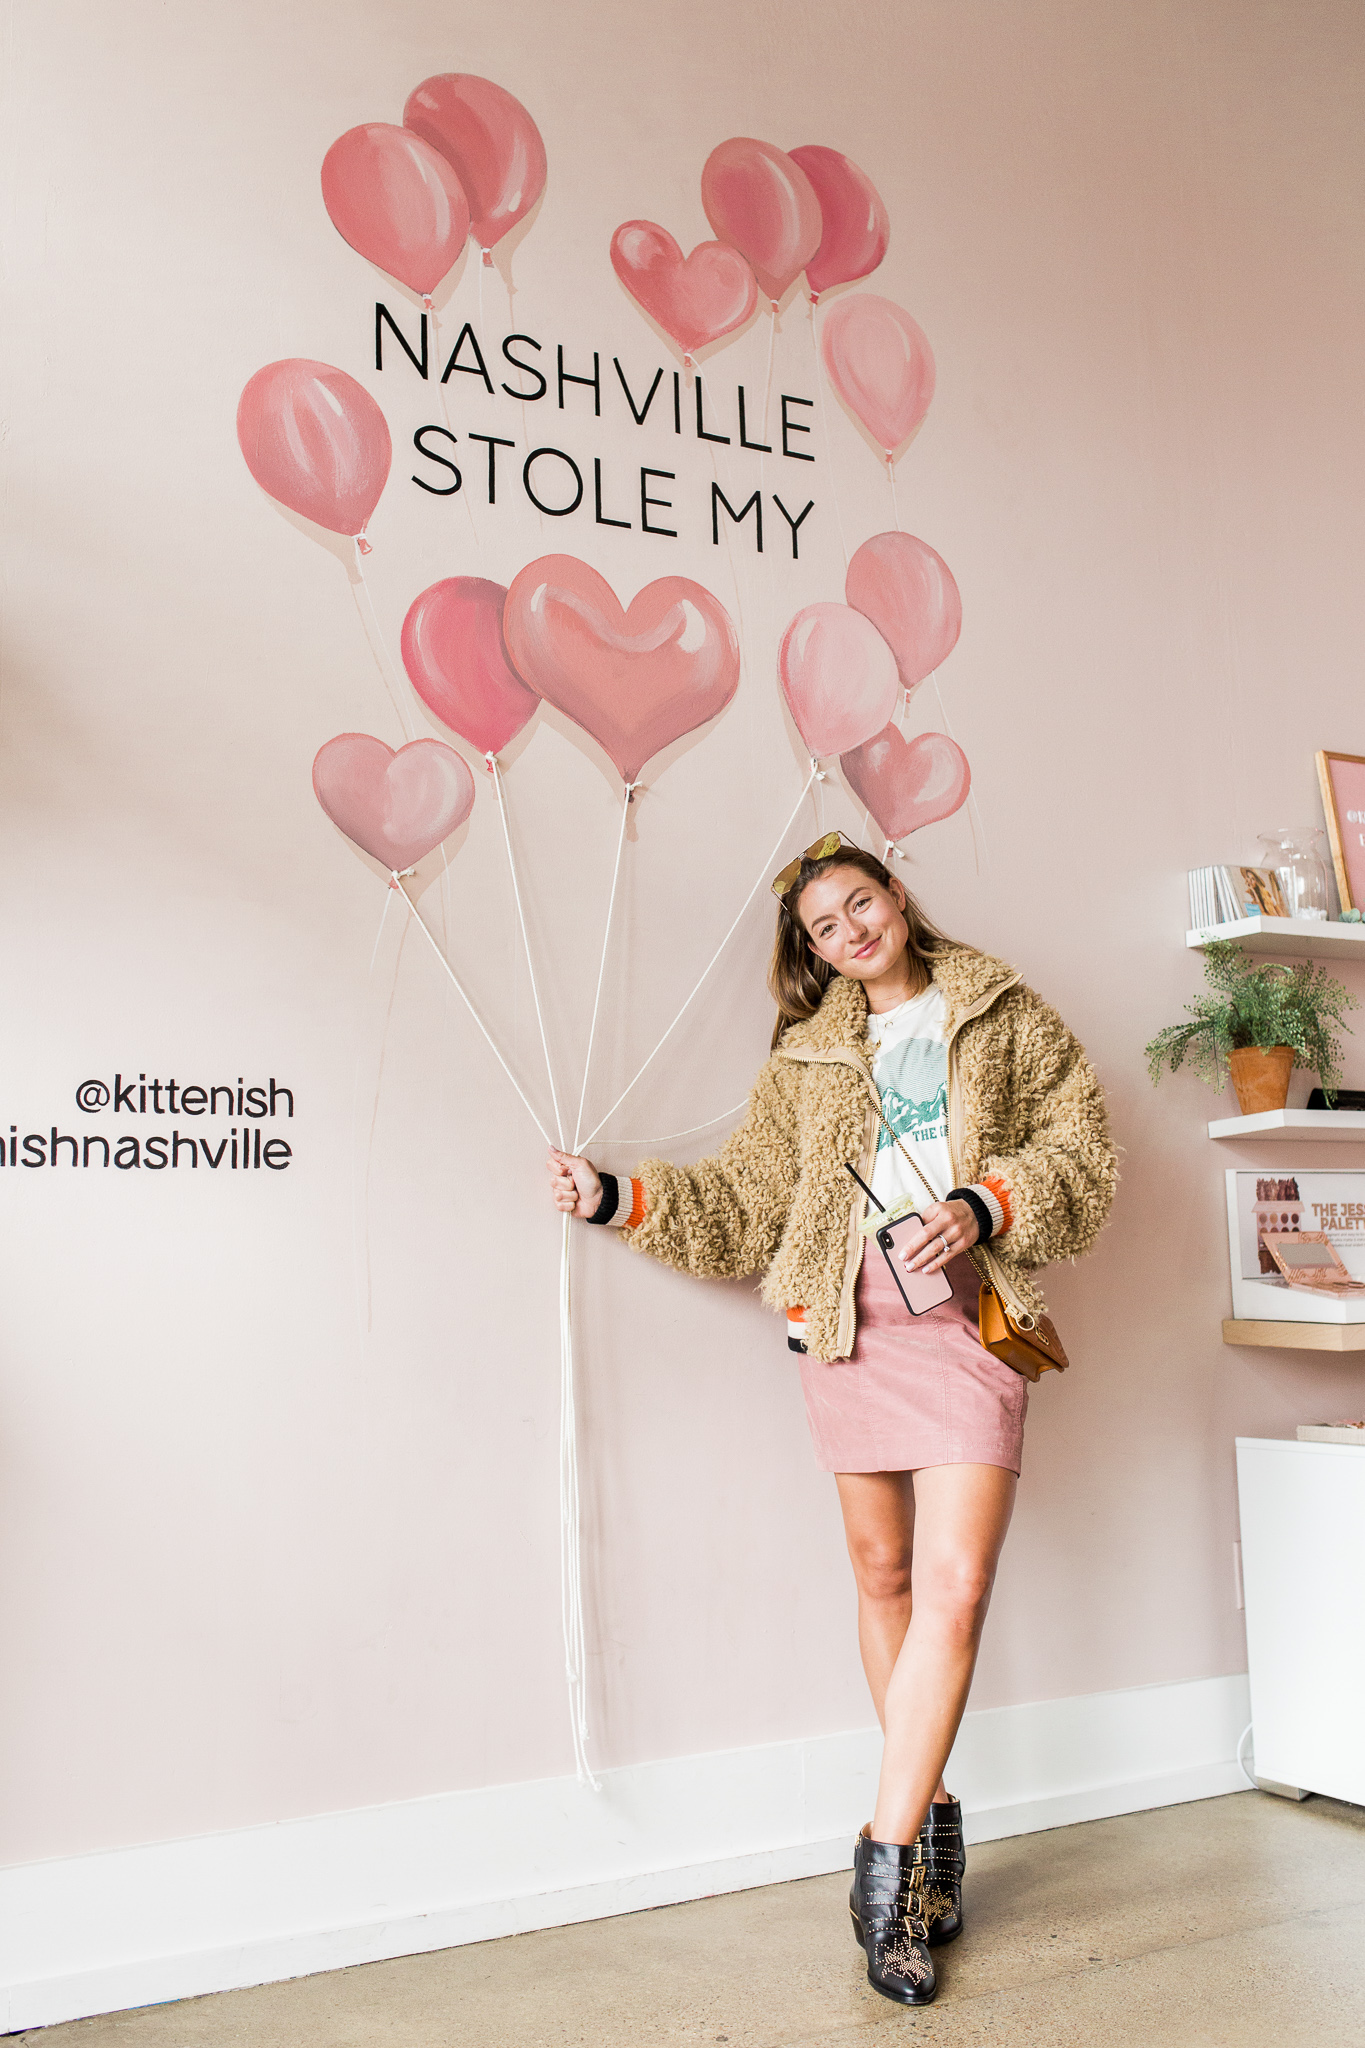 Kittenish - 304 11th Ave S Nashville, TN 37203